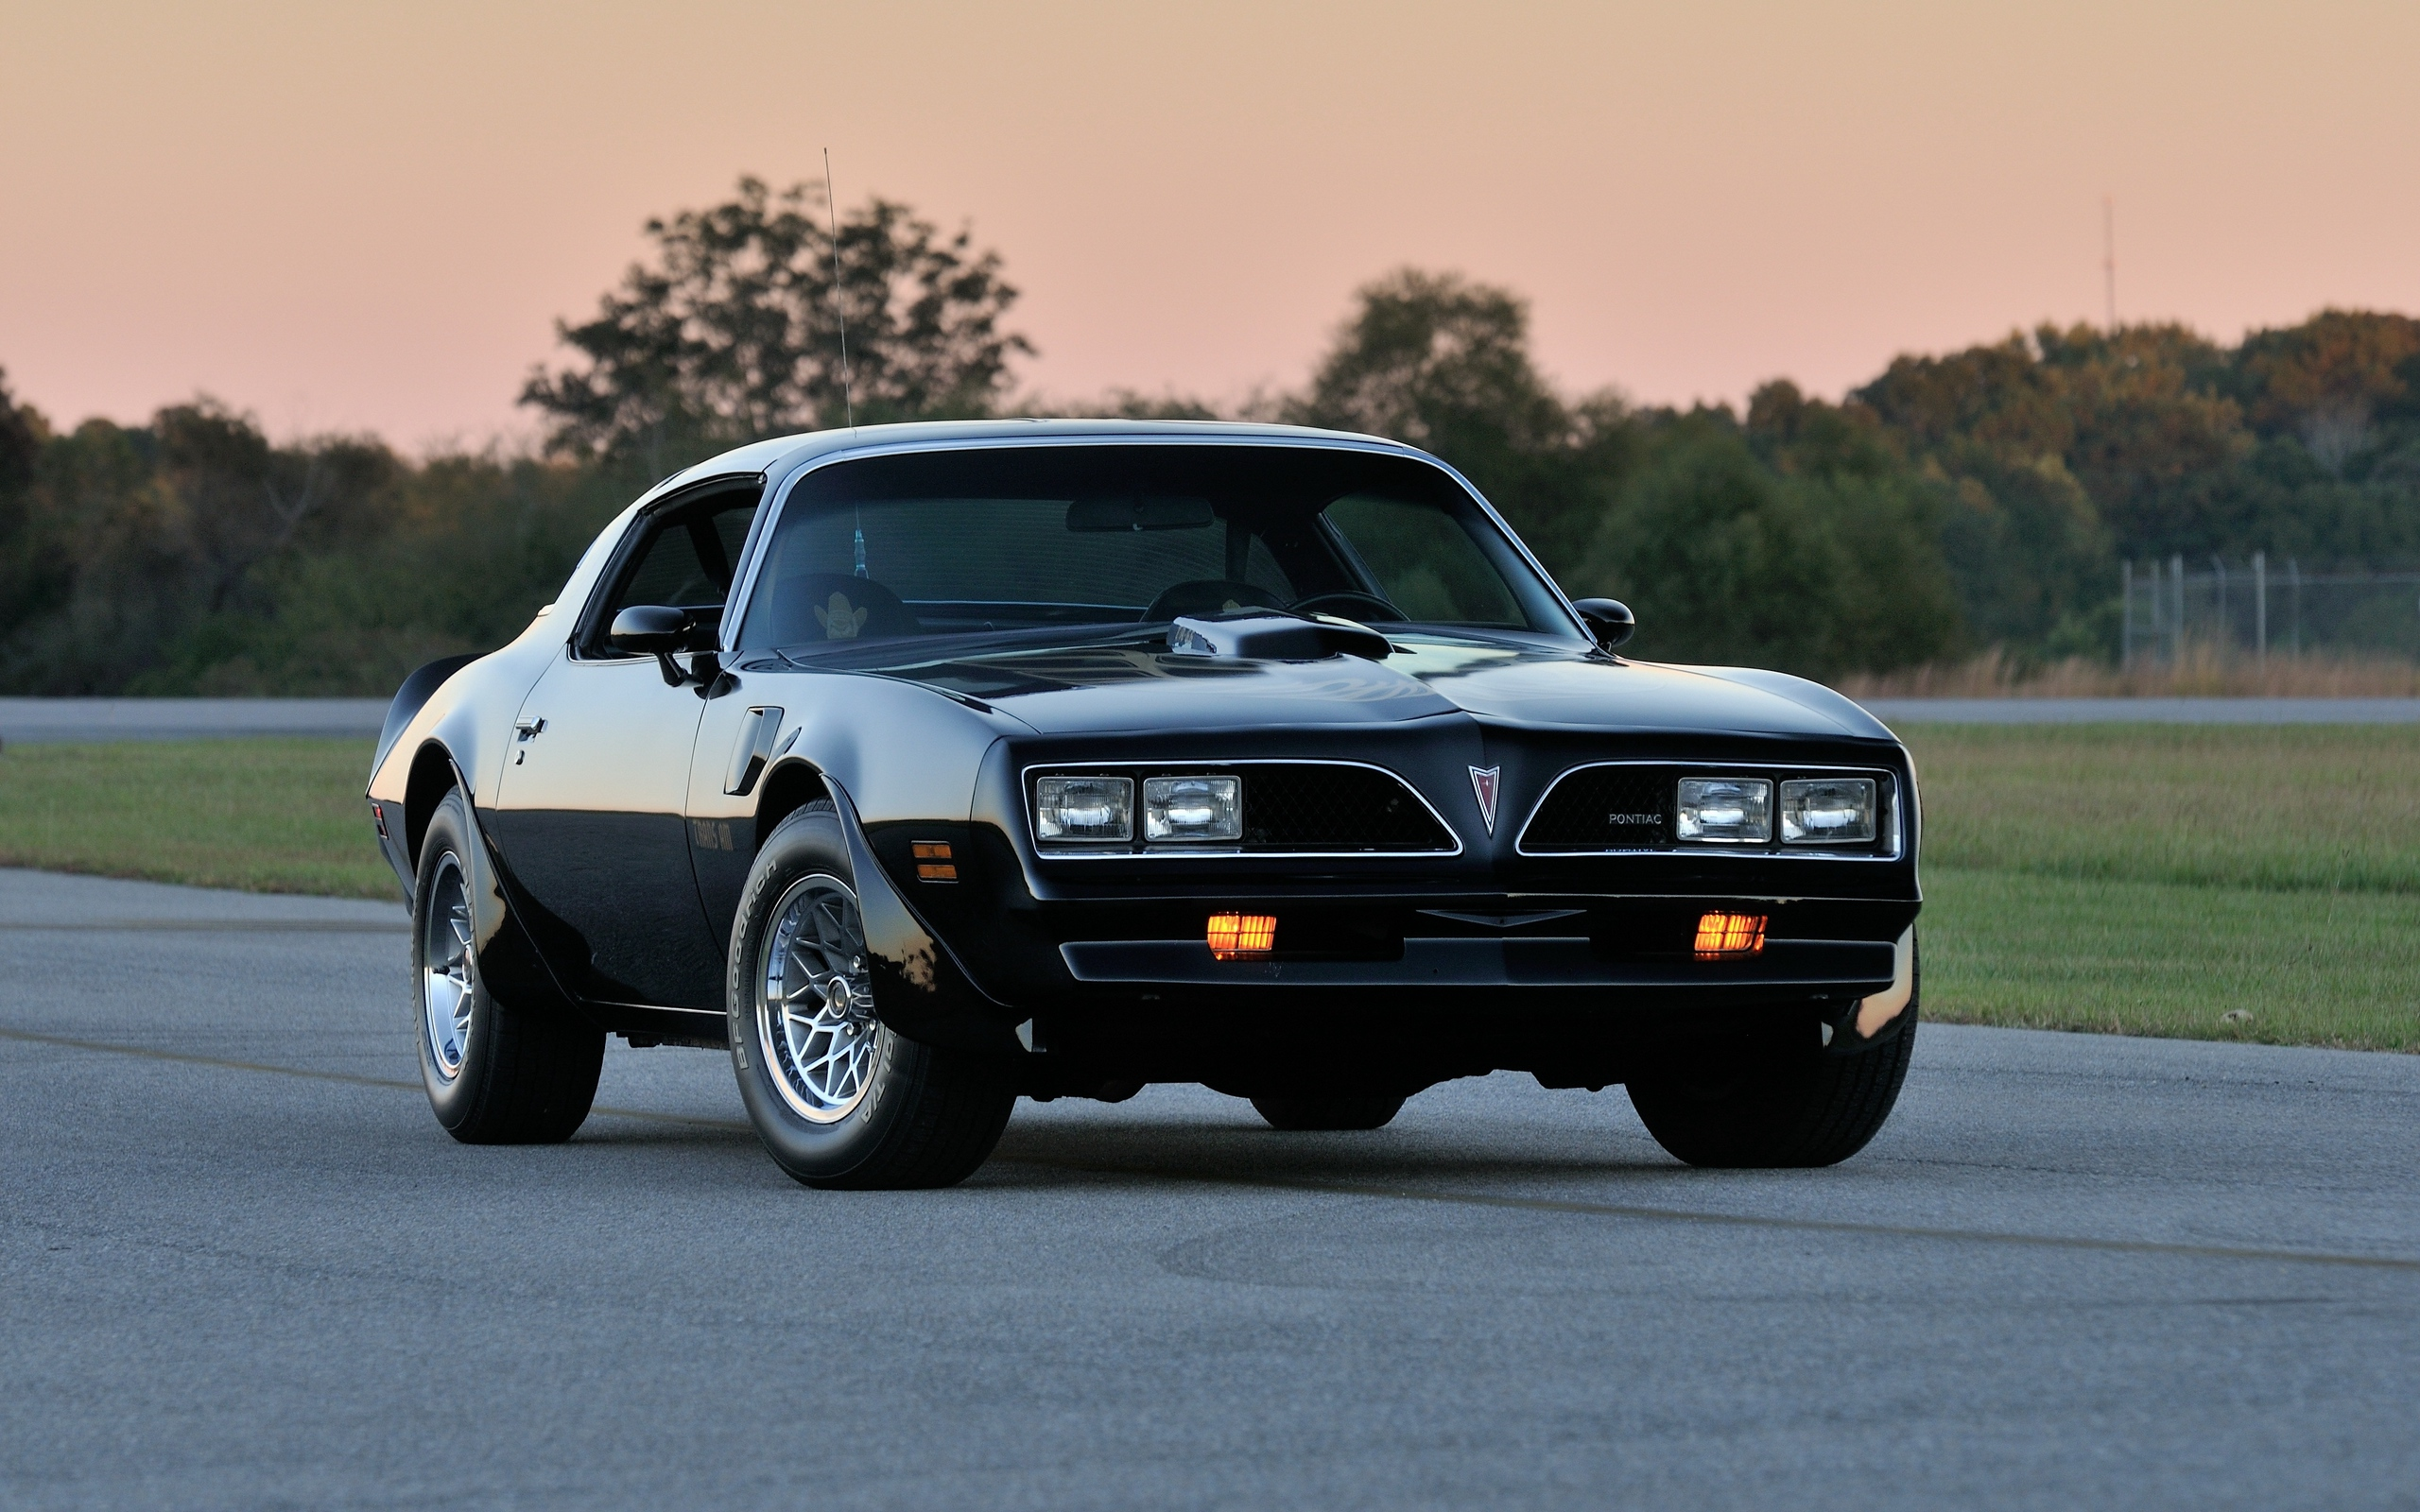 Download wallpaper 2560x1600 pontiac firebird trans am ws6 2560x1600